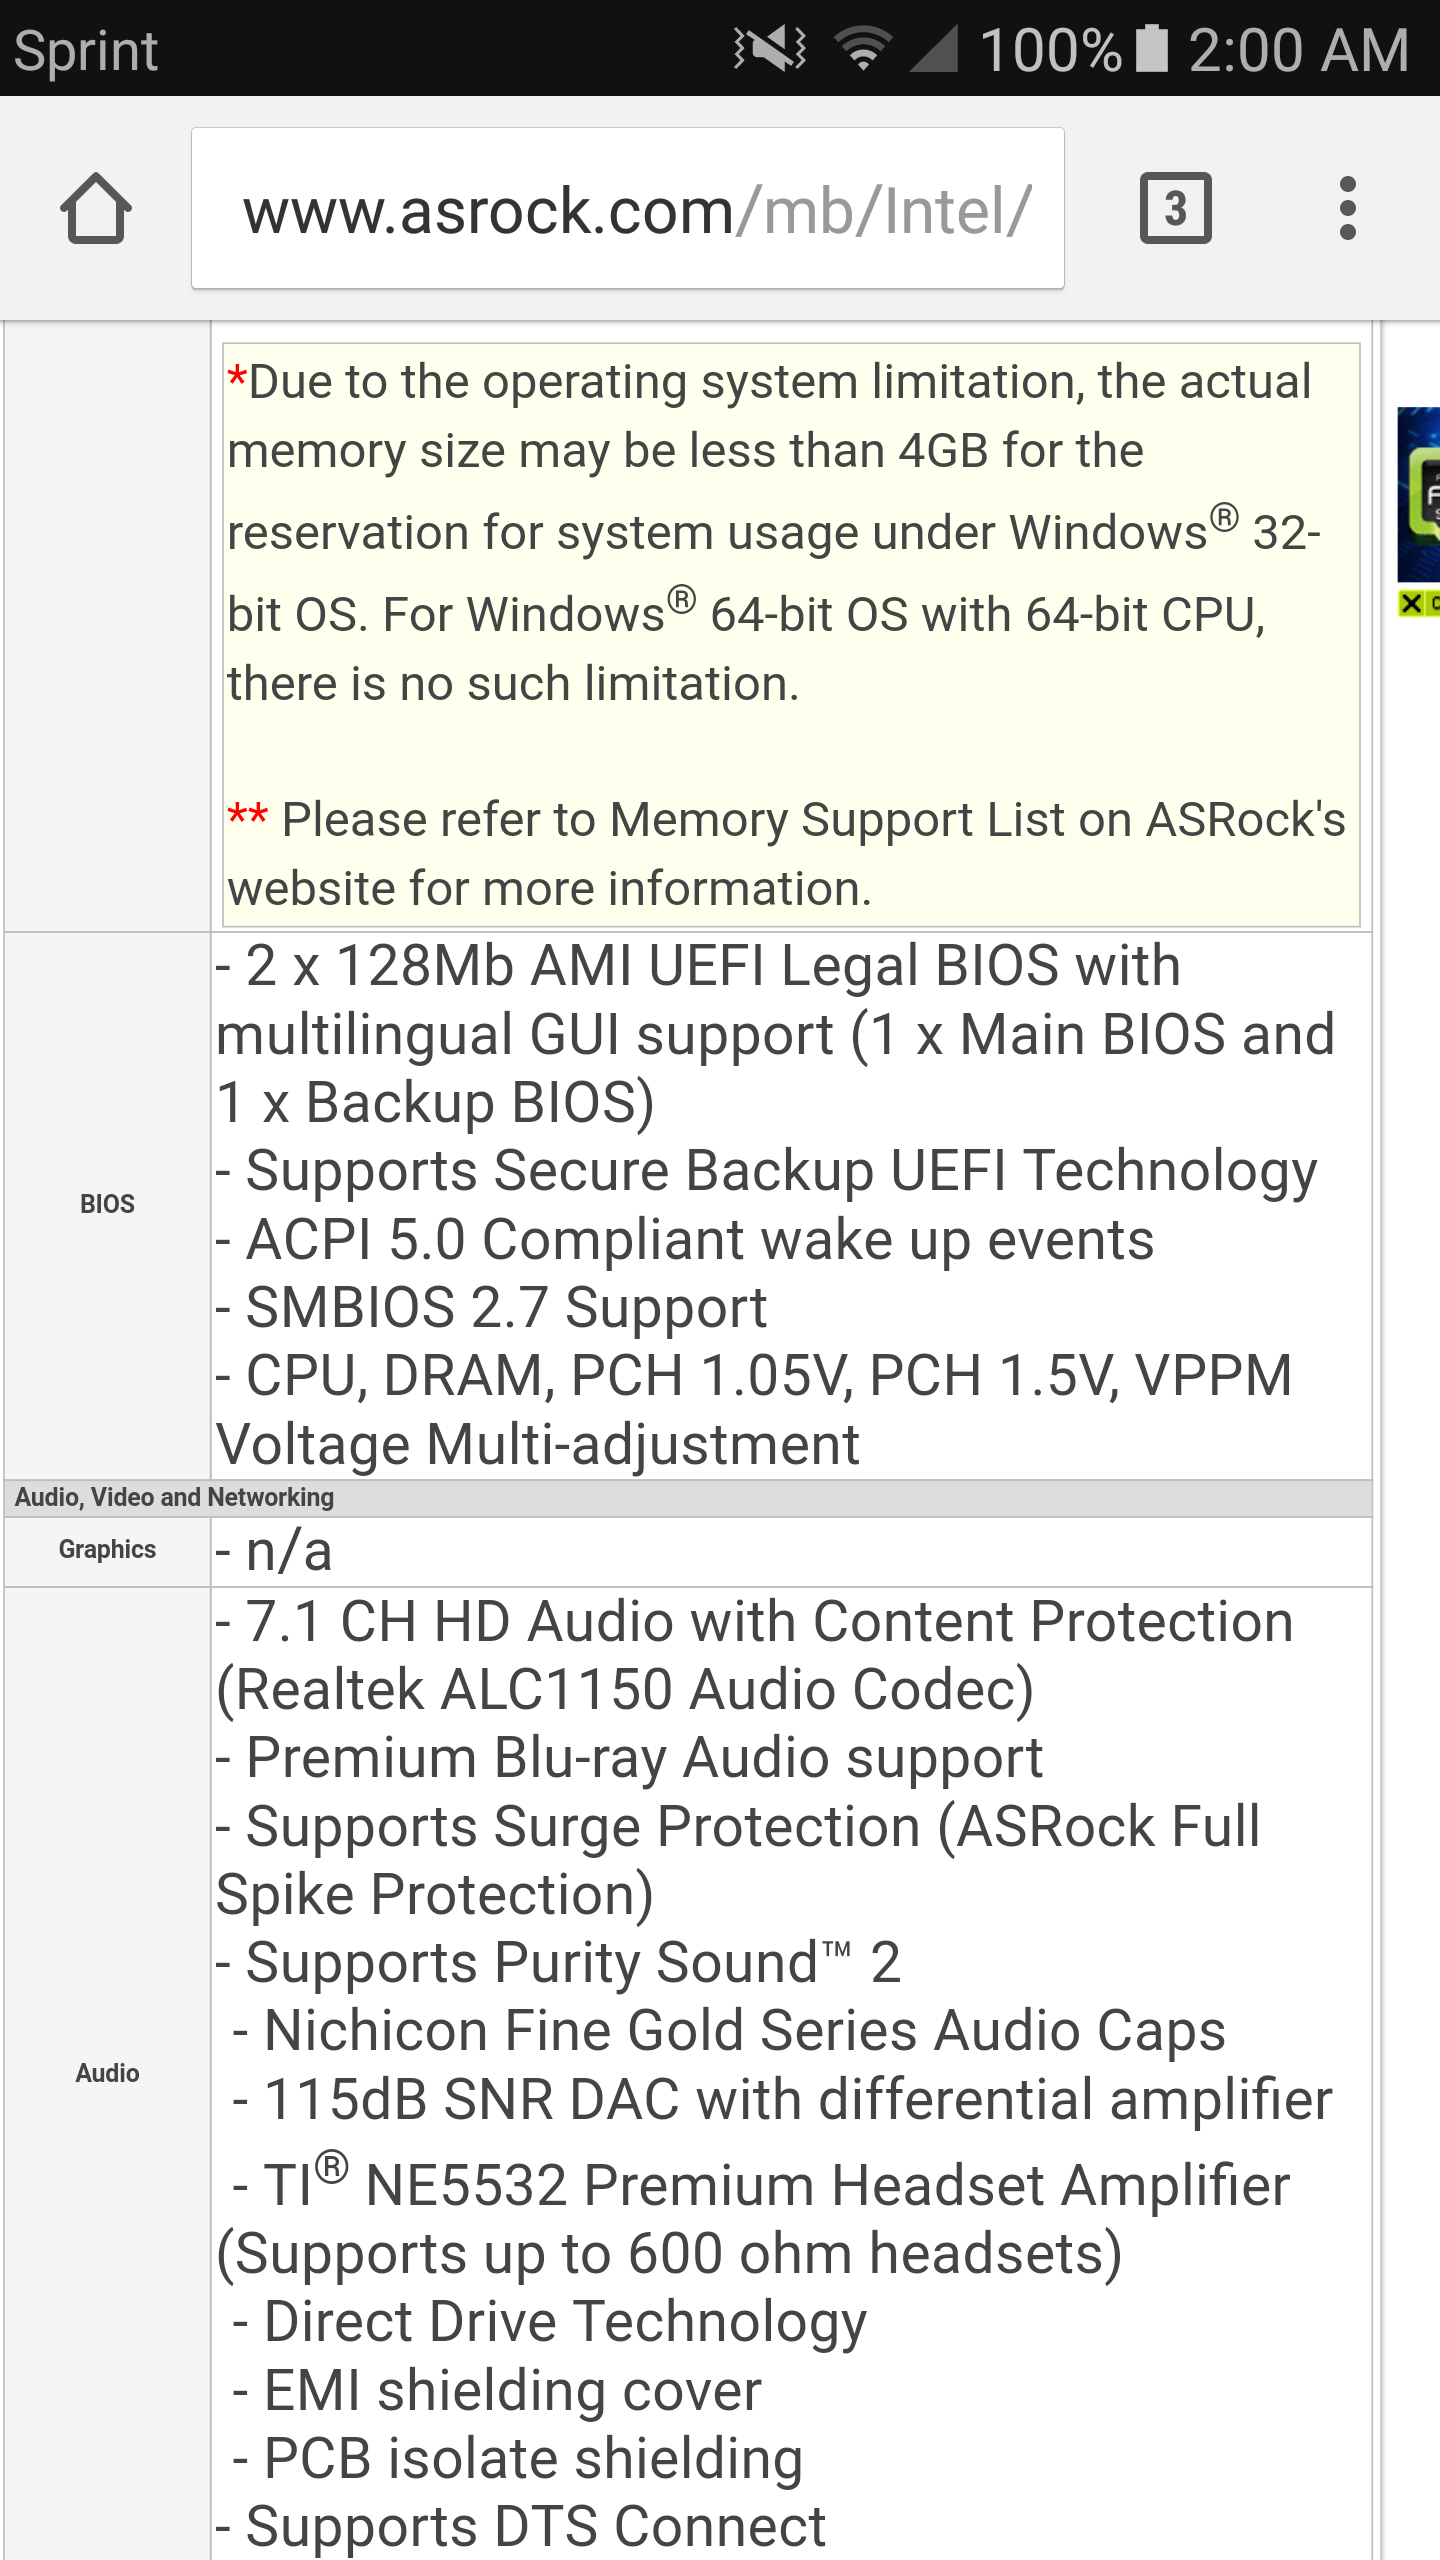 Please Help!!! Newly built PC, thinking there is a